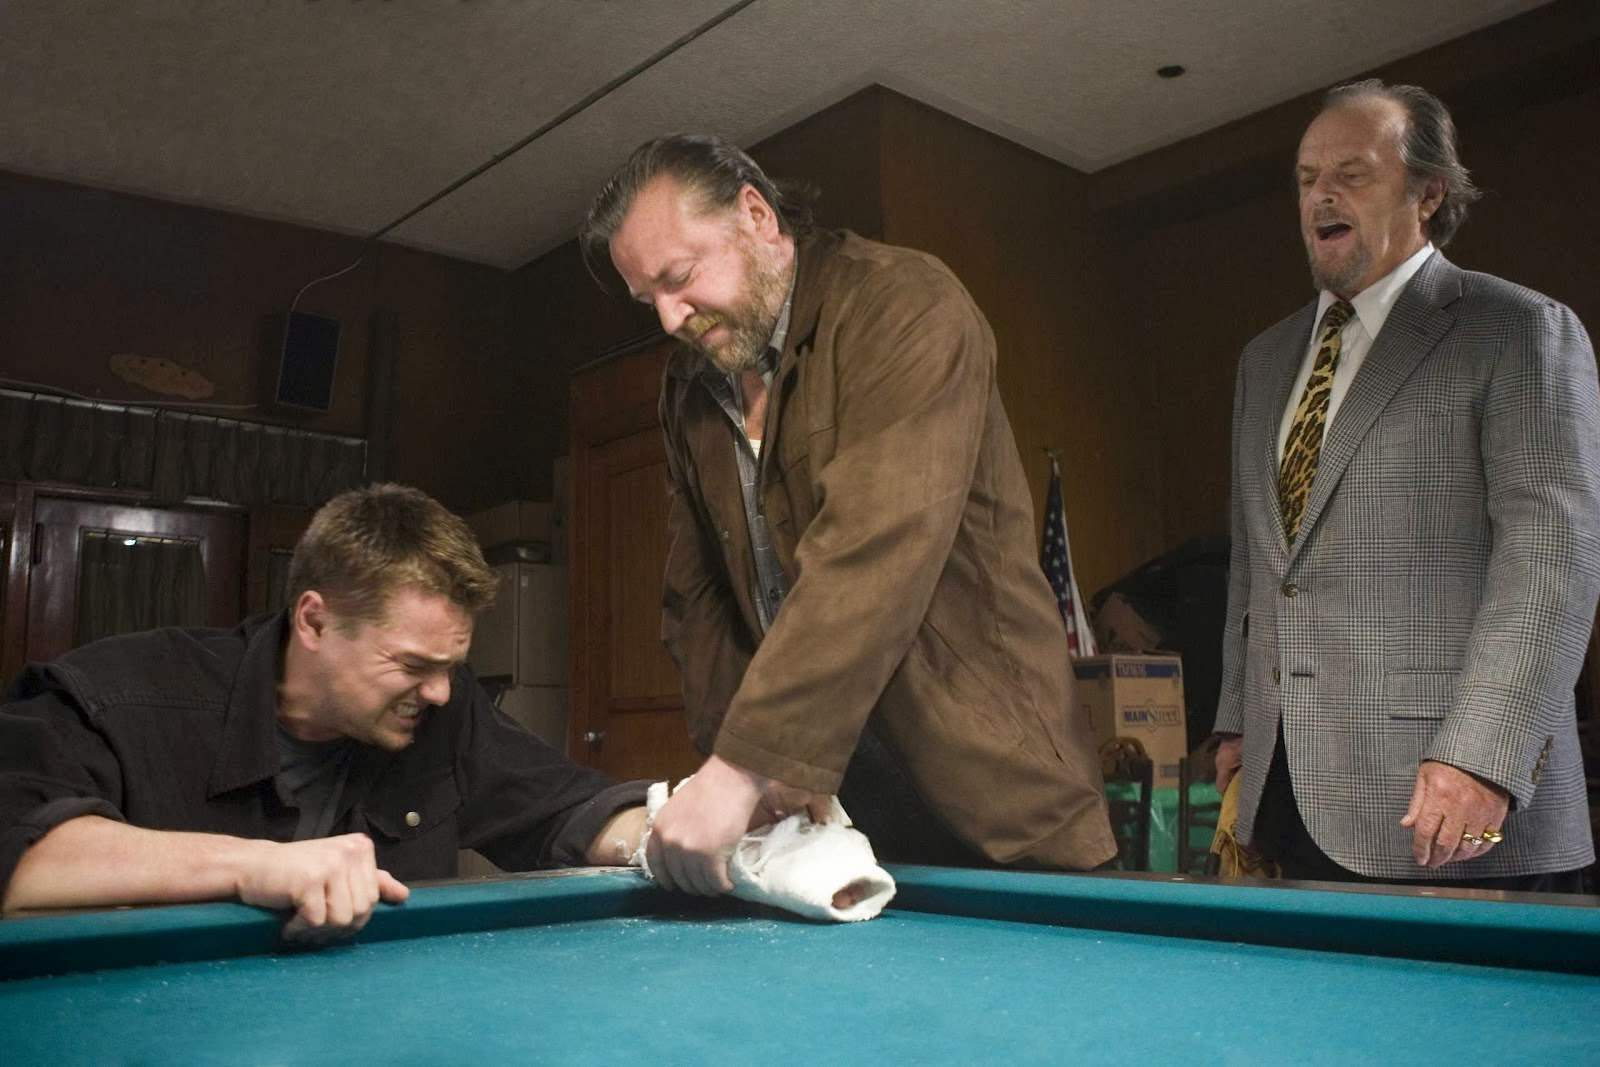 Leonardo DiCaprio, Ray Winstone & Jack Nicholson in The Departed